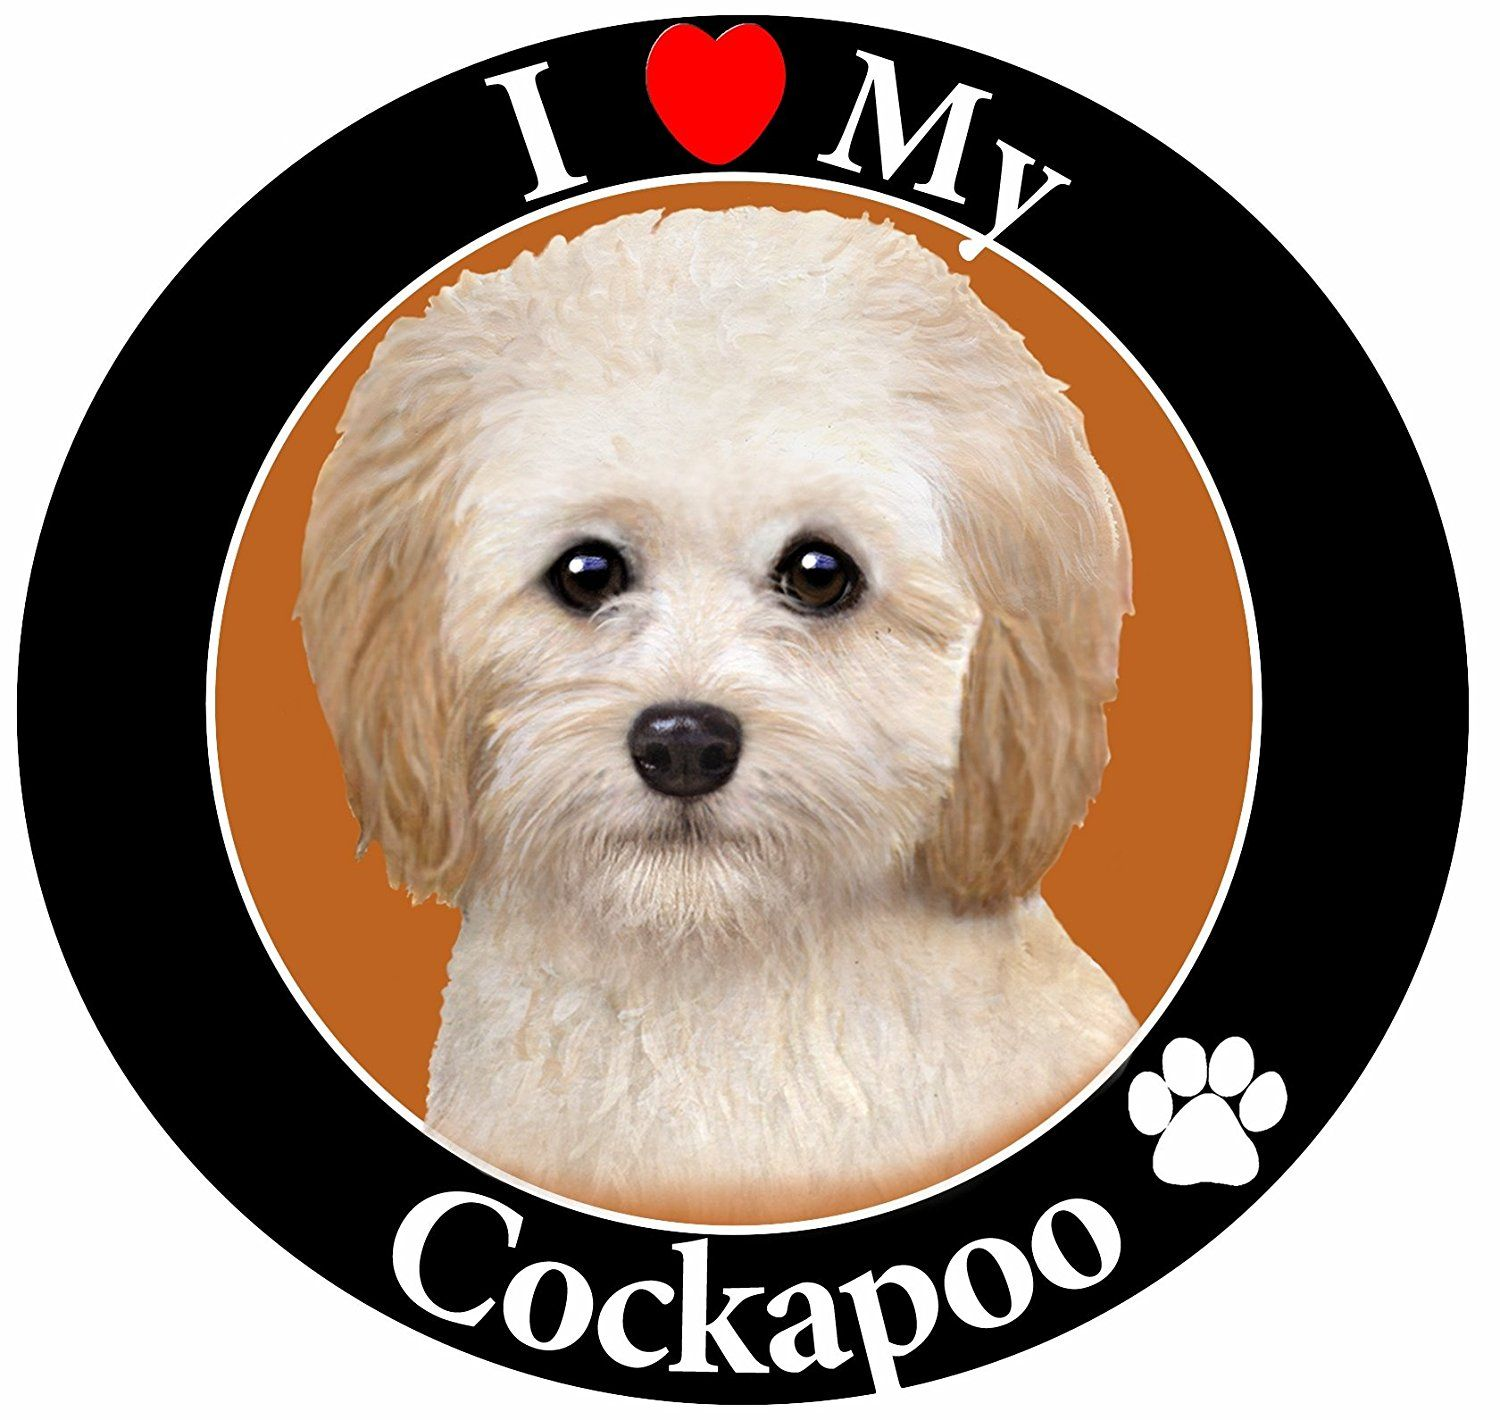 I Love My Cockapoo Car Magnet With Realistic Looking Cockapoo Photograph In The Center Covered In High Quality Uv Gloss Fo Cockapoo Cat Memorial Dog Memorial [ 1420 x 1500 Pixel ]